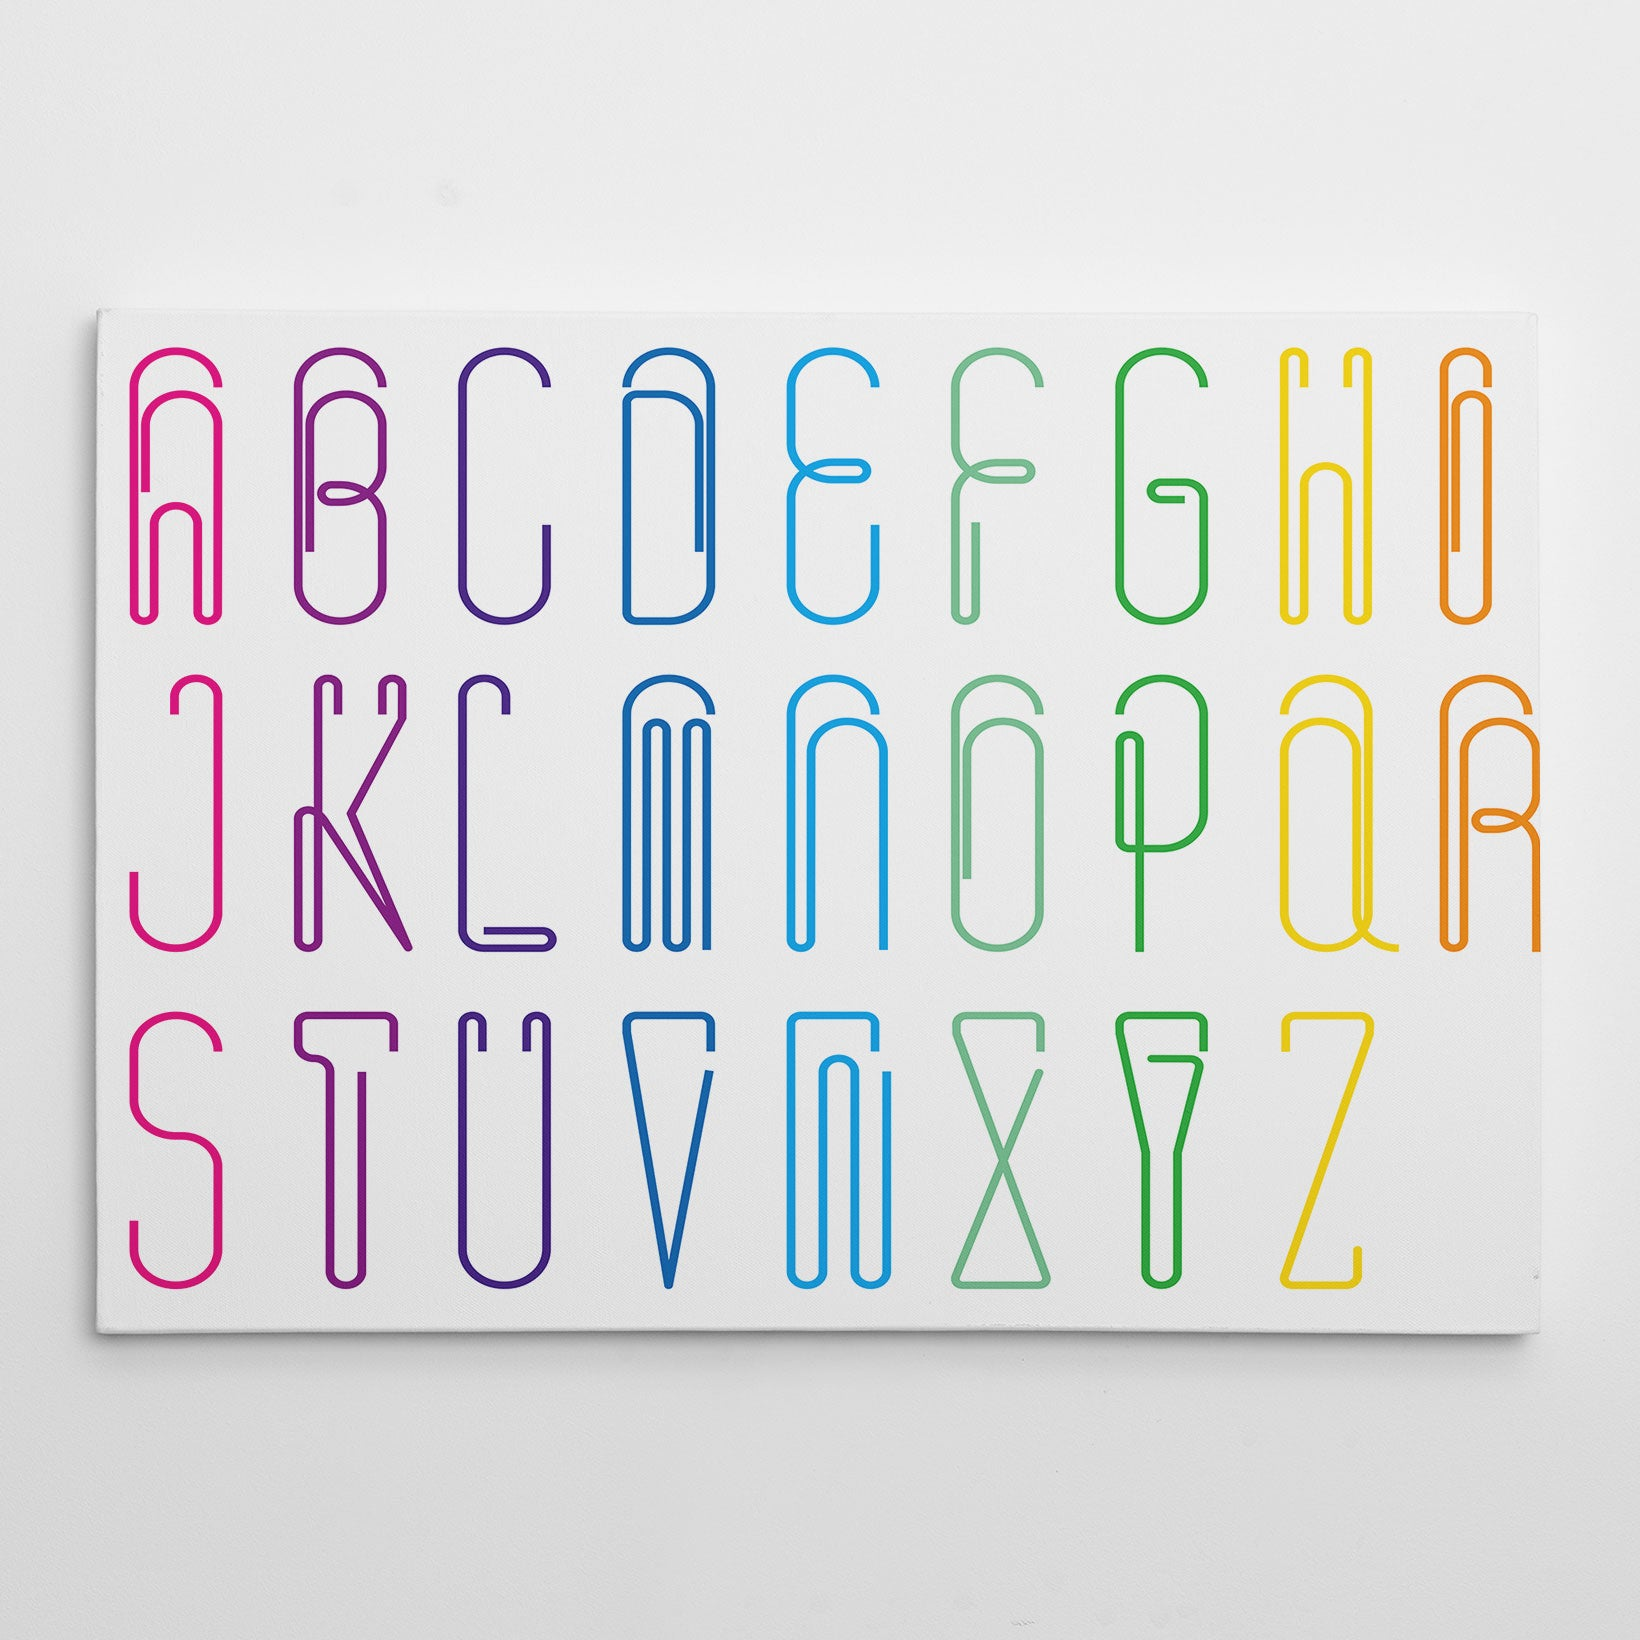 Canvas print with colourful paper clips alphabet letters, on white background.